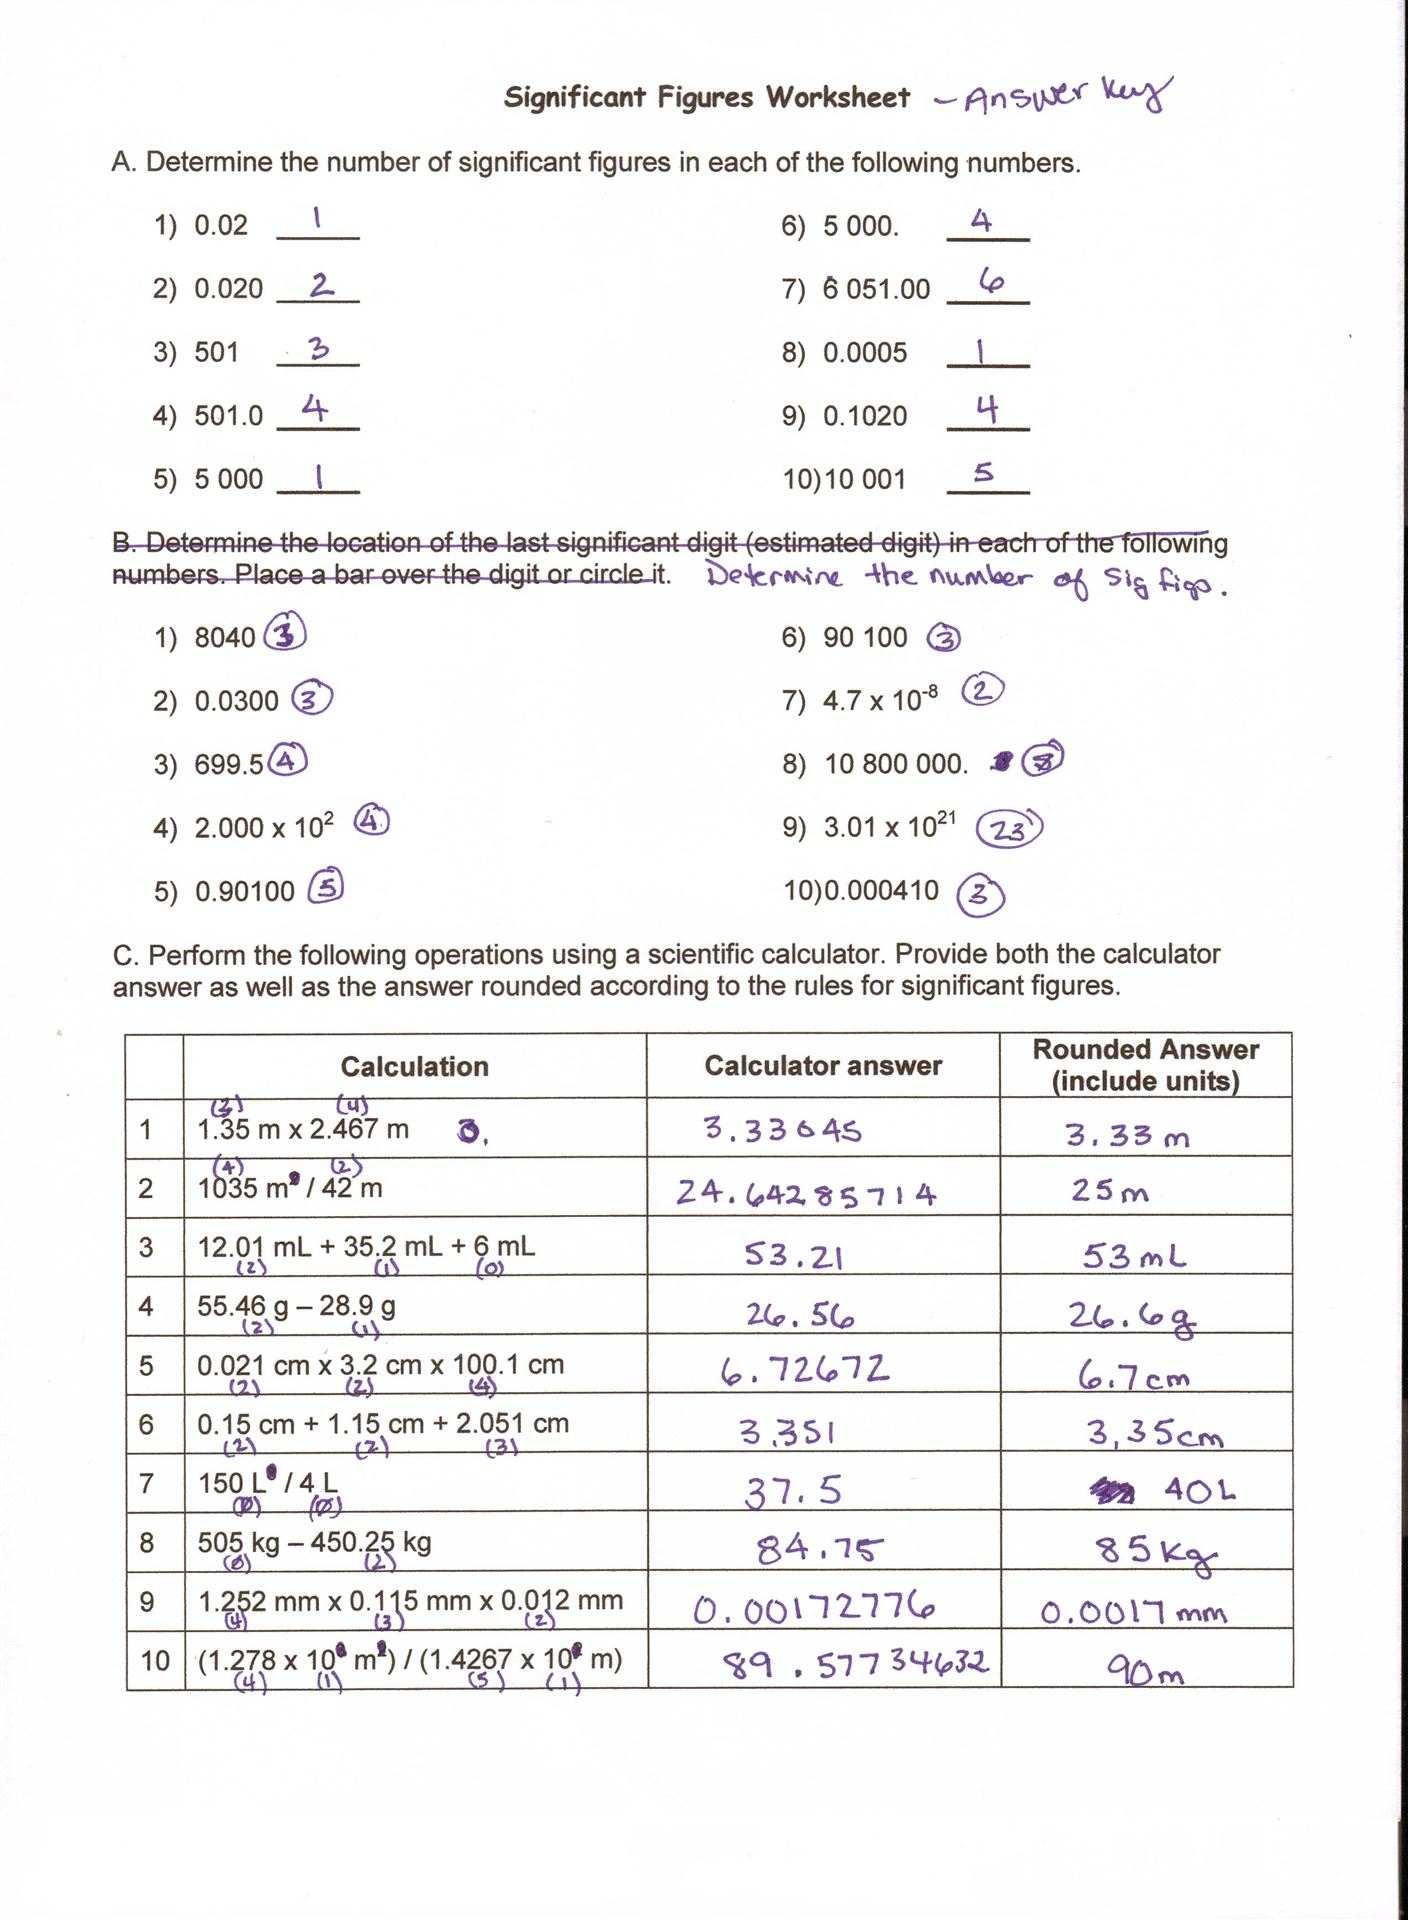 Worksheets Momentum Worksheet Answer Key sig fig worksheet answer key jpg key